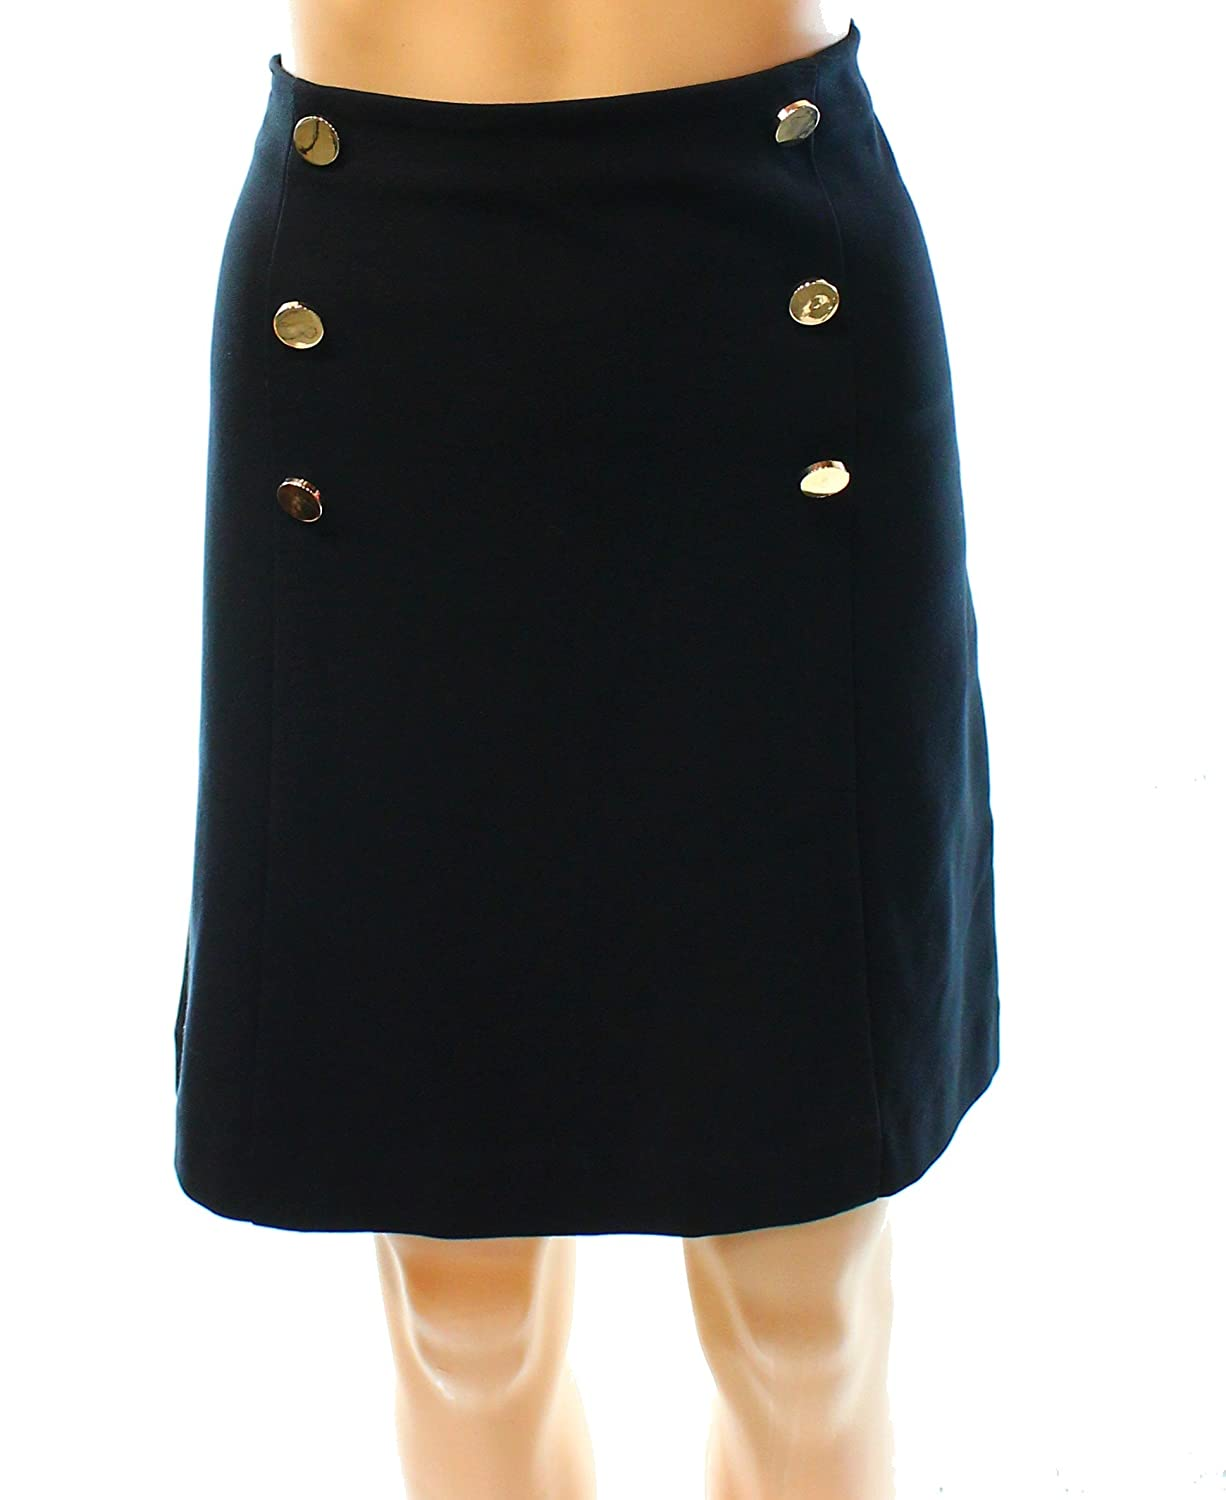 7a2517cd10 Amazon.com: Inc International Concepts Women's A-Line Sailor Skirt (12,  Deep Black): Clothing